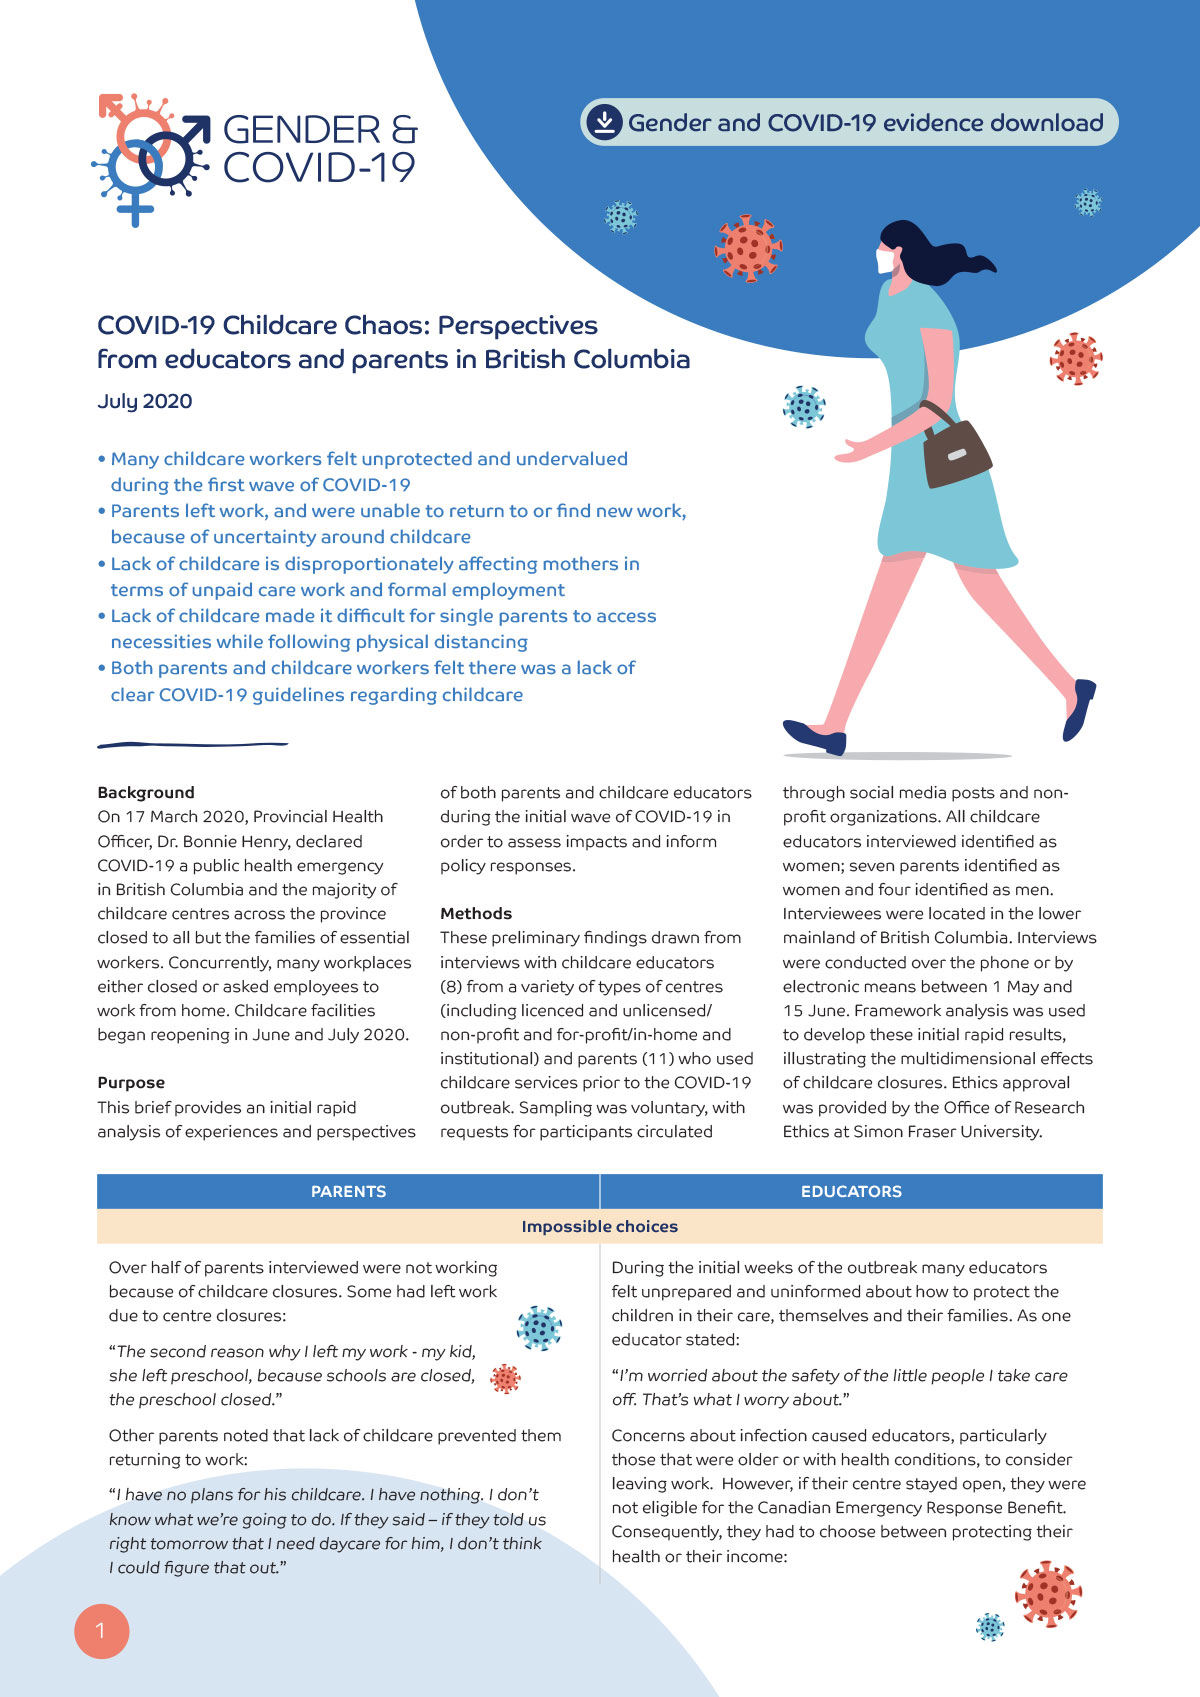 PAC00377_Gender-and-Covid-19_Canada-Childcare-1